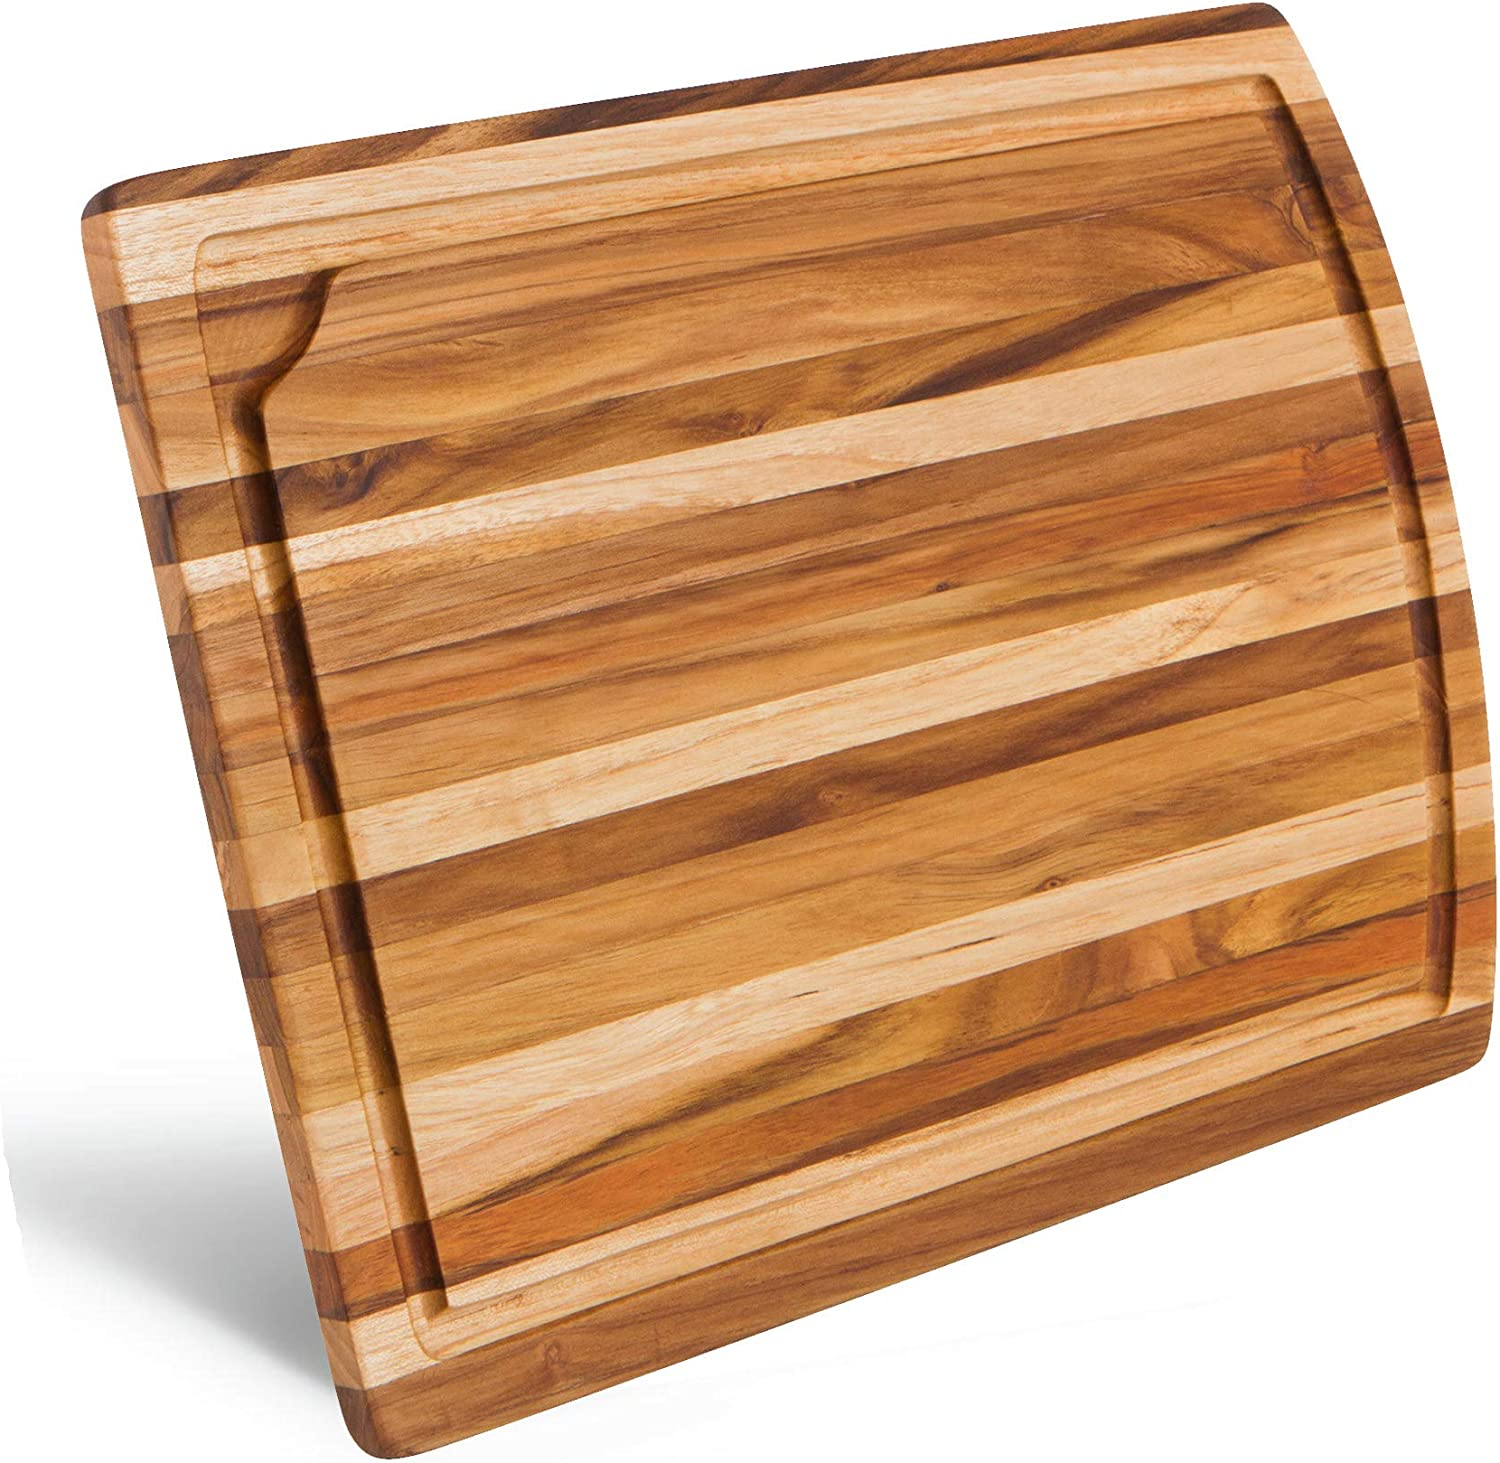 Natural Teak Wood Cutting Board with Juice Groove | Medium Kitchen Chopping Board For Daily Use - 15 x 10¾ x ¾ inch | Cheese Serving Tray - Premium Edition